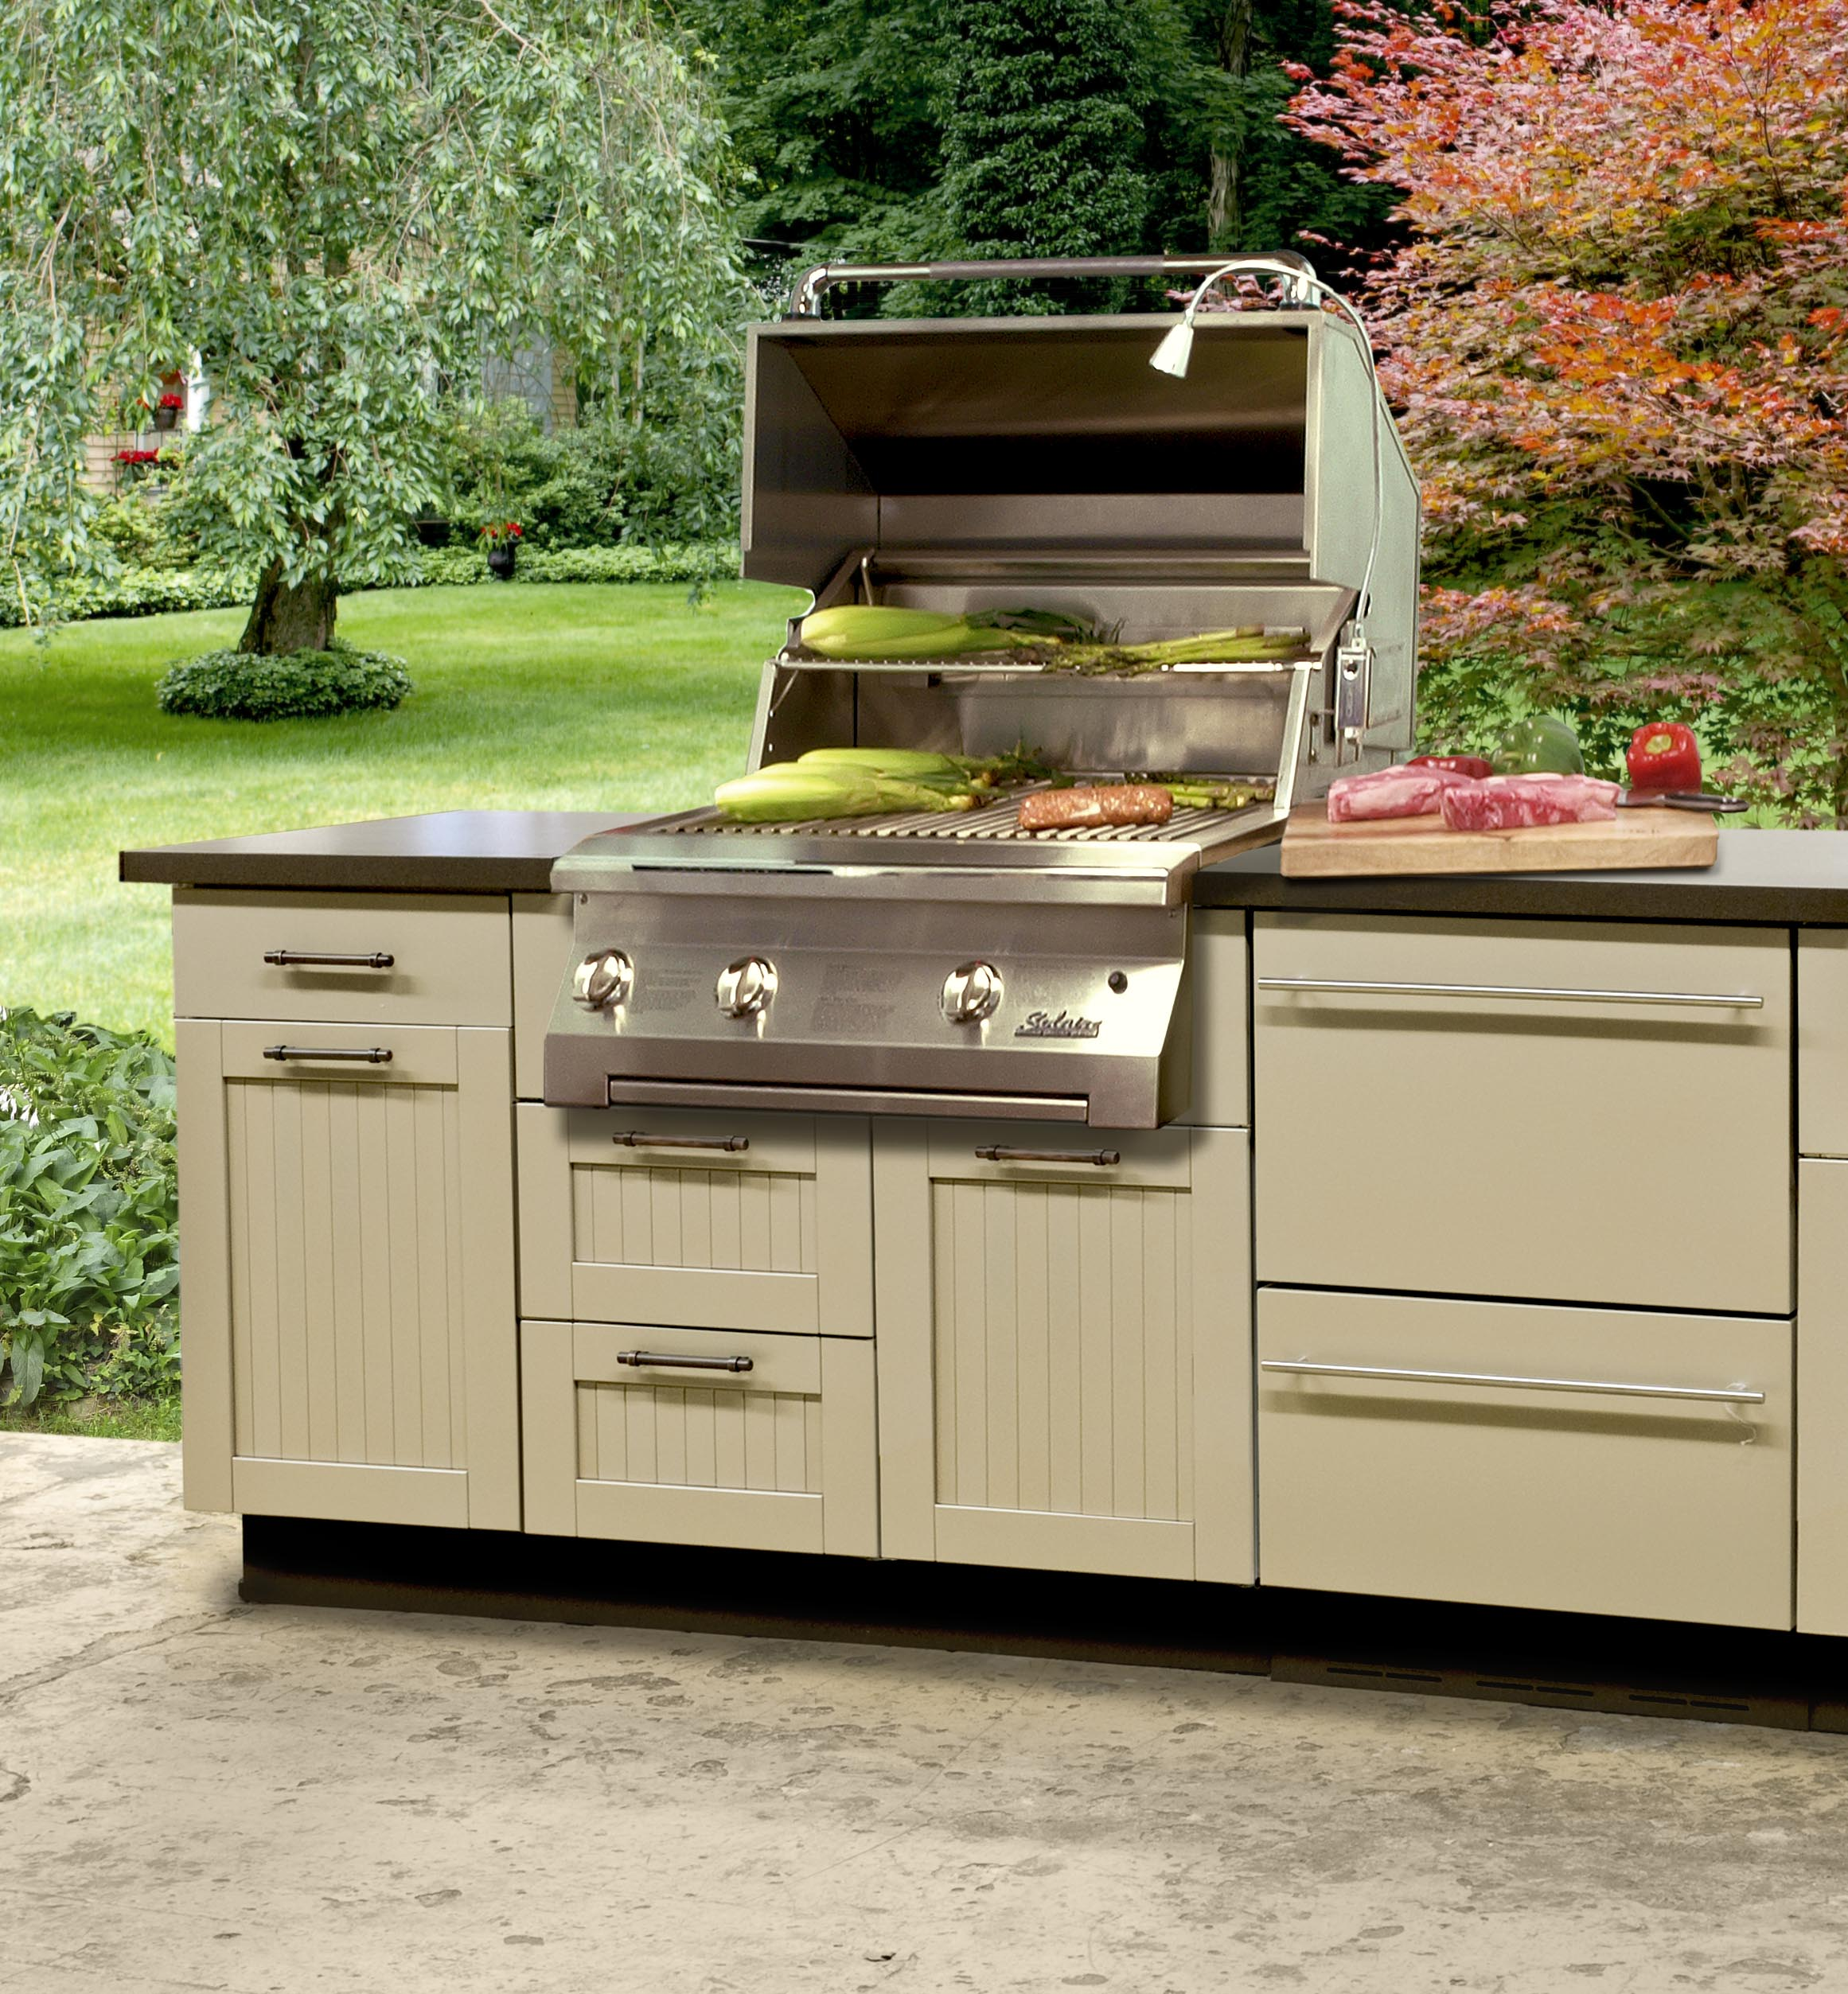 Danver stainless steel cabinetry kbtribechat for Outdoor kitchen cabinets